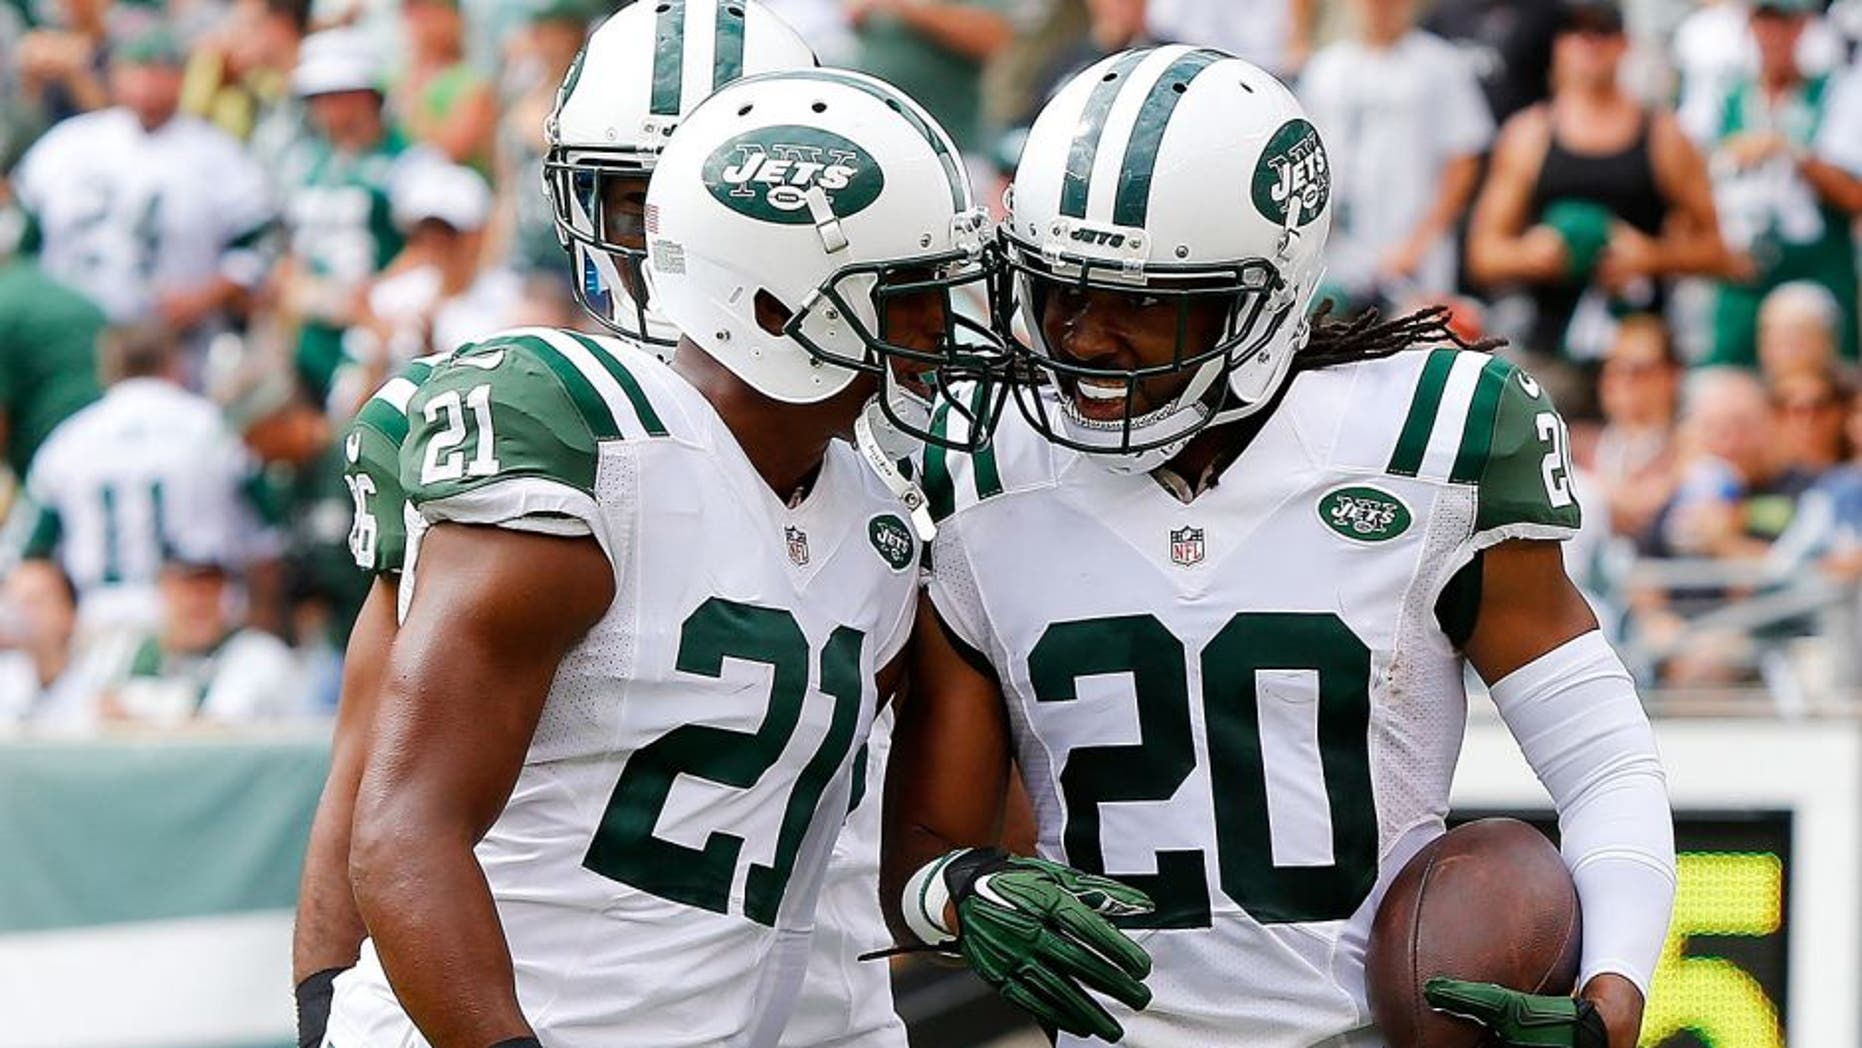 EAST RUTHERFORD, NJ - SEPTEMBER 13: (NEW YORK DAILIES OUT) Marcus Williams #20 of the New York Jets celebrates his interception against the Cleveland Browns with his teammate Marcus Gilchrist #21 on September 13, 2015 at MetLife Stadium in East Rutherford, New Jersey. The Jets defeated the Browns 31-10. (Photo by Jim McIsaac/Getty Images)